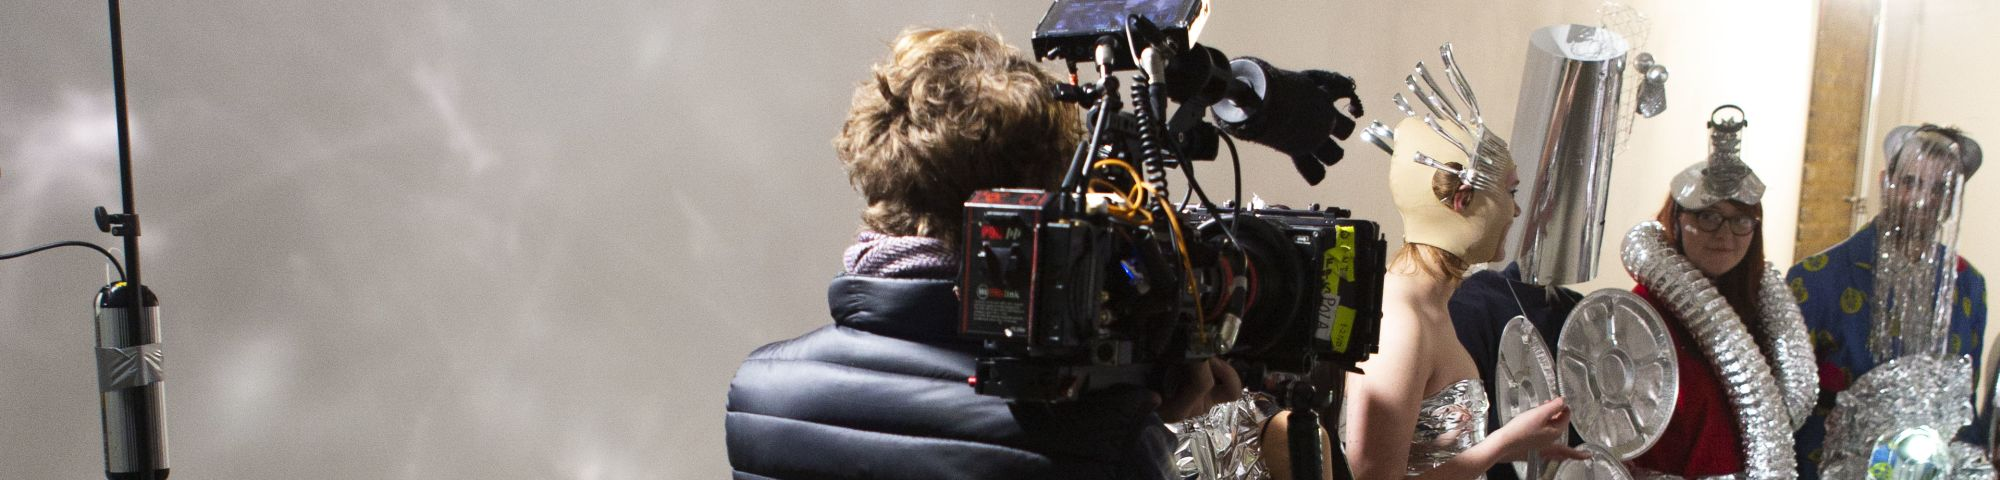 Person holding camera standing in front of people dressed in silver